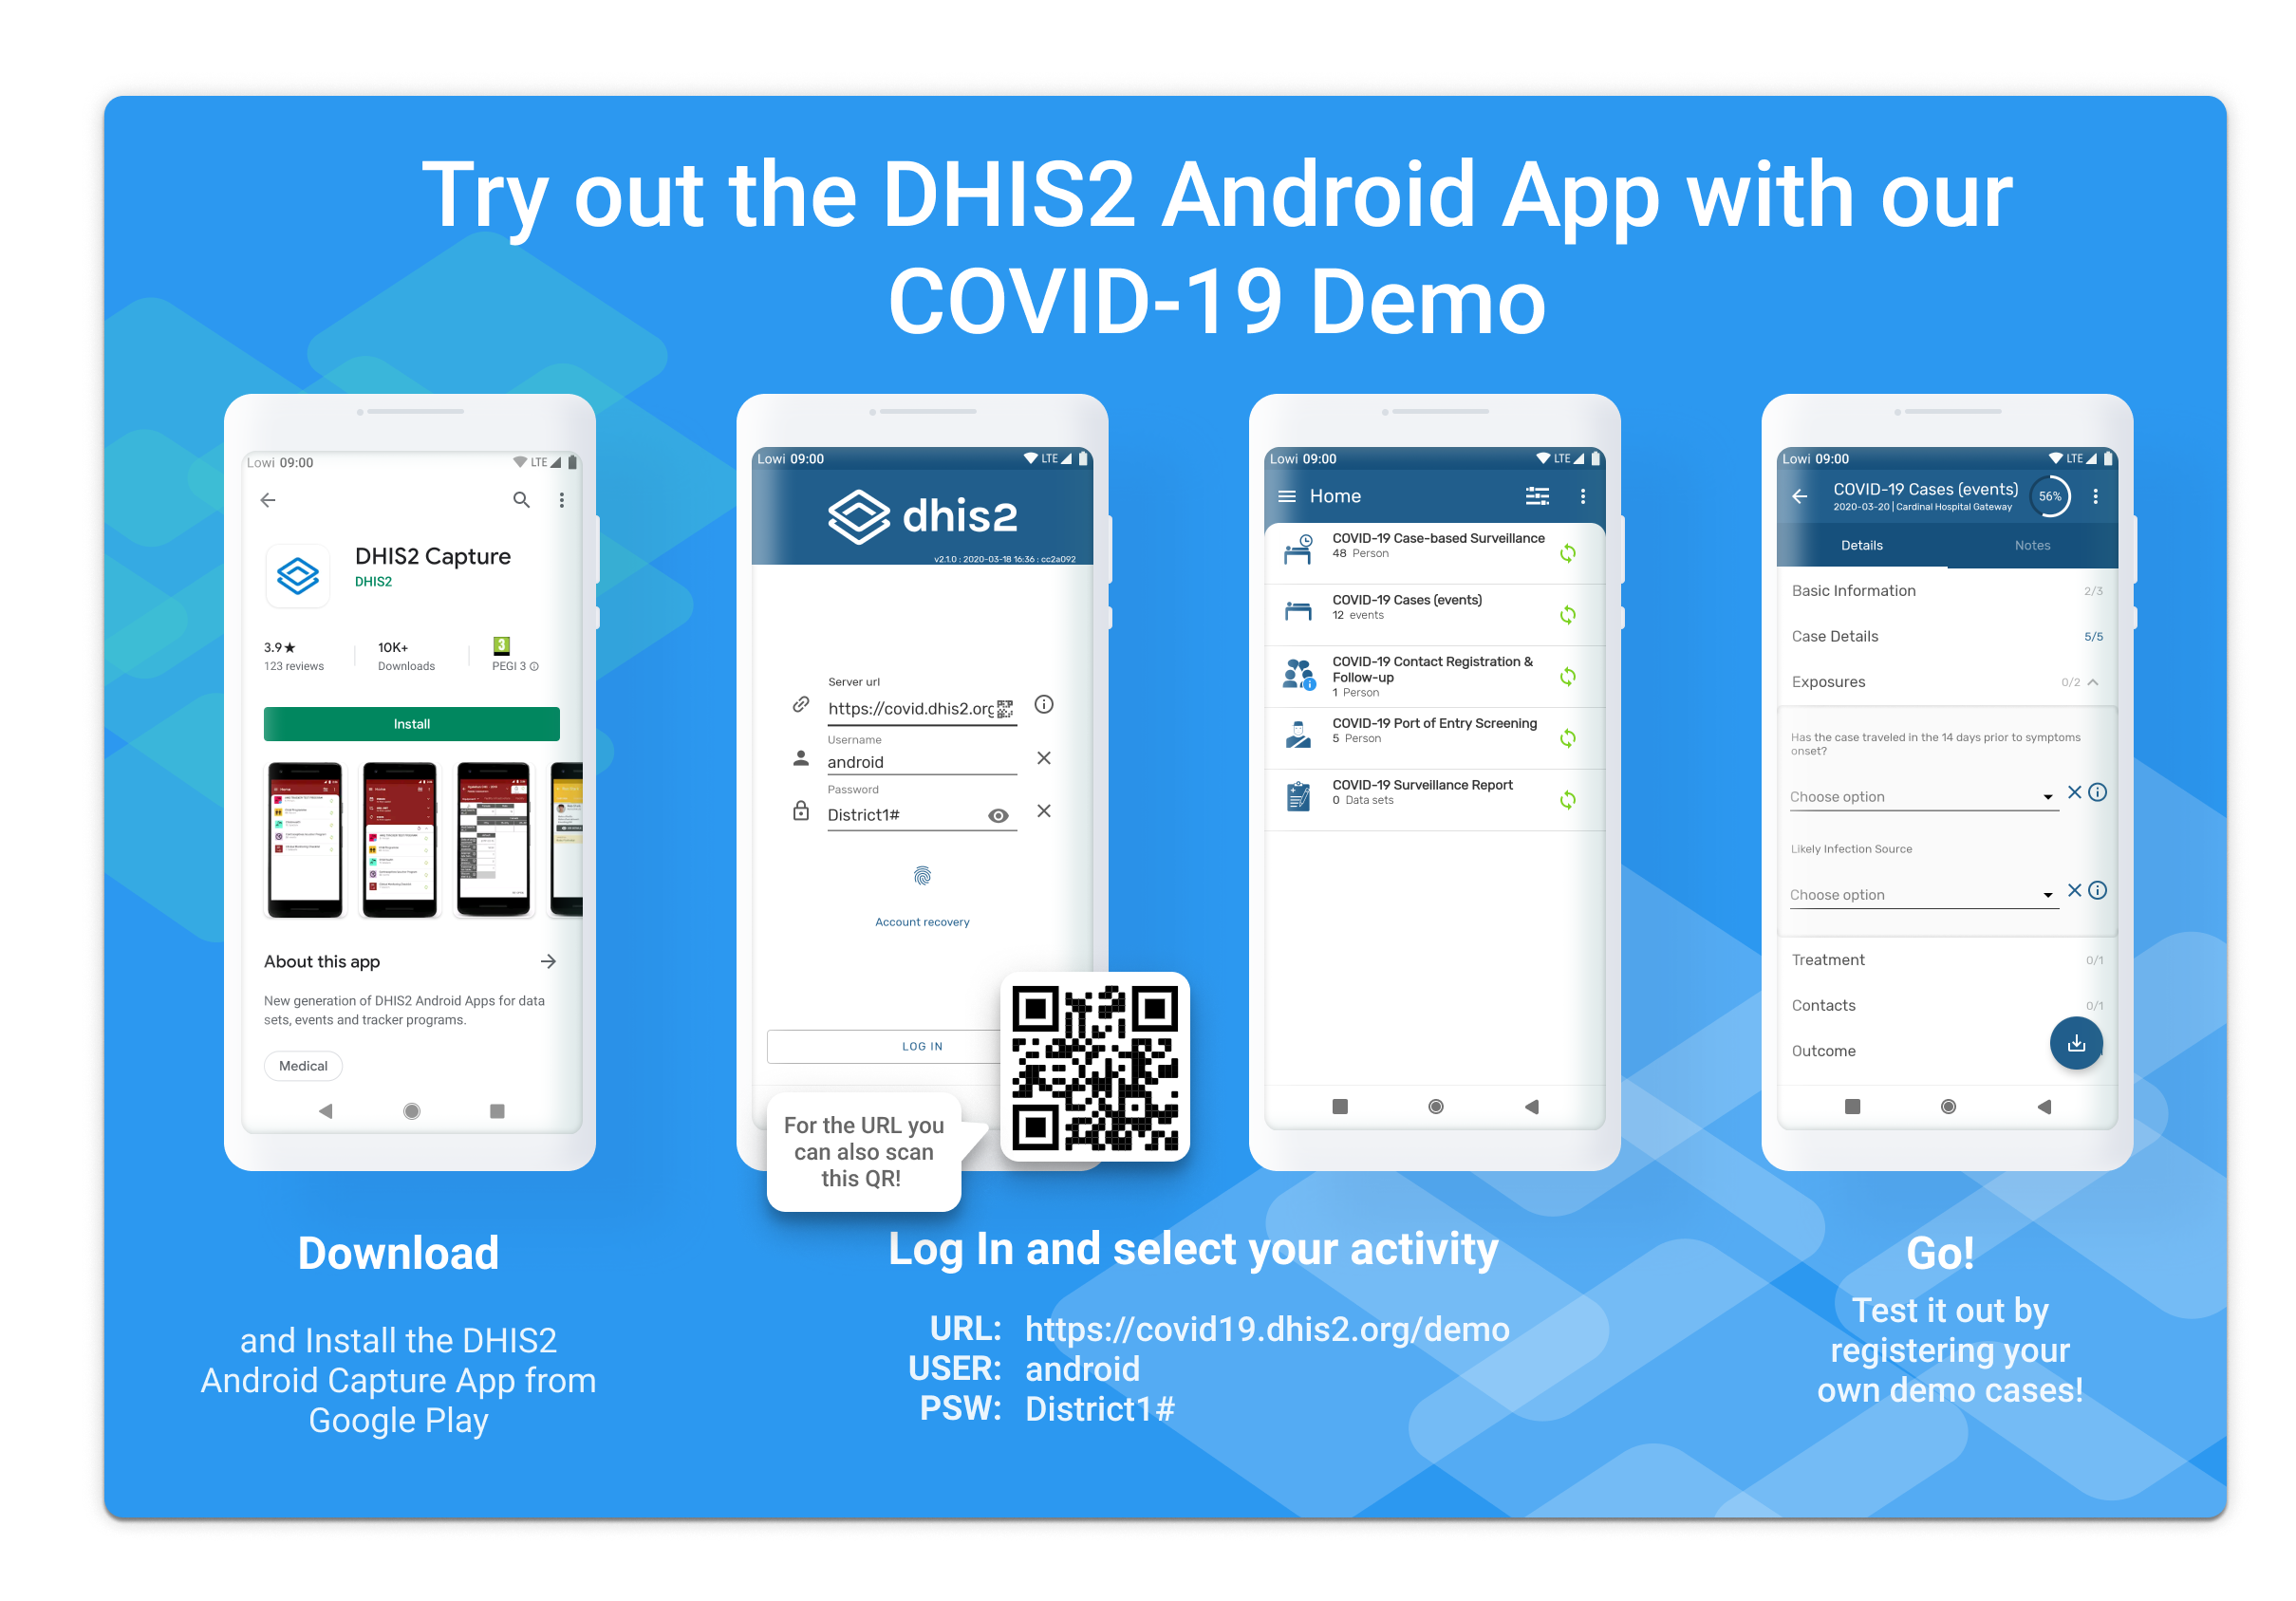 How to test DHIS2 Android Capture demo